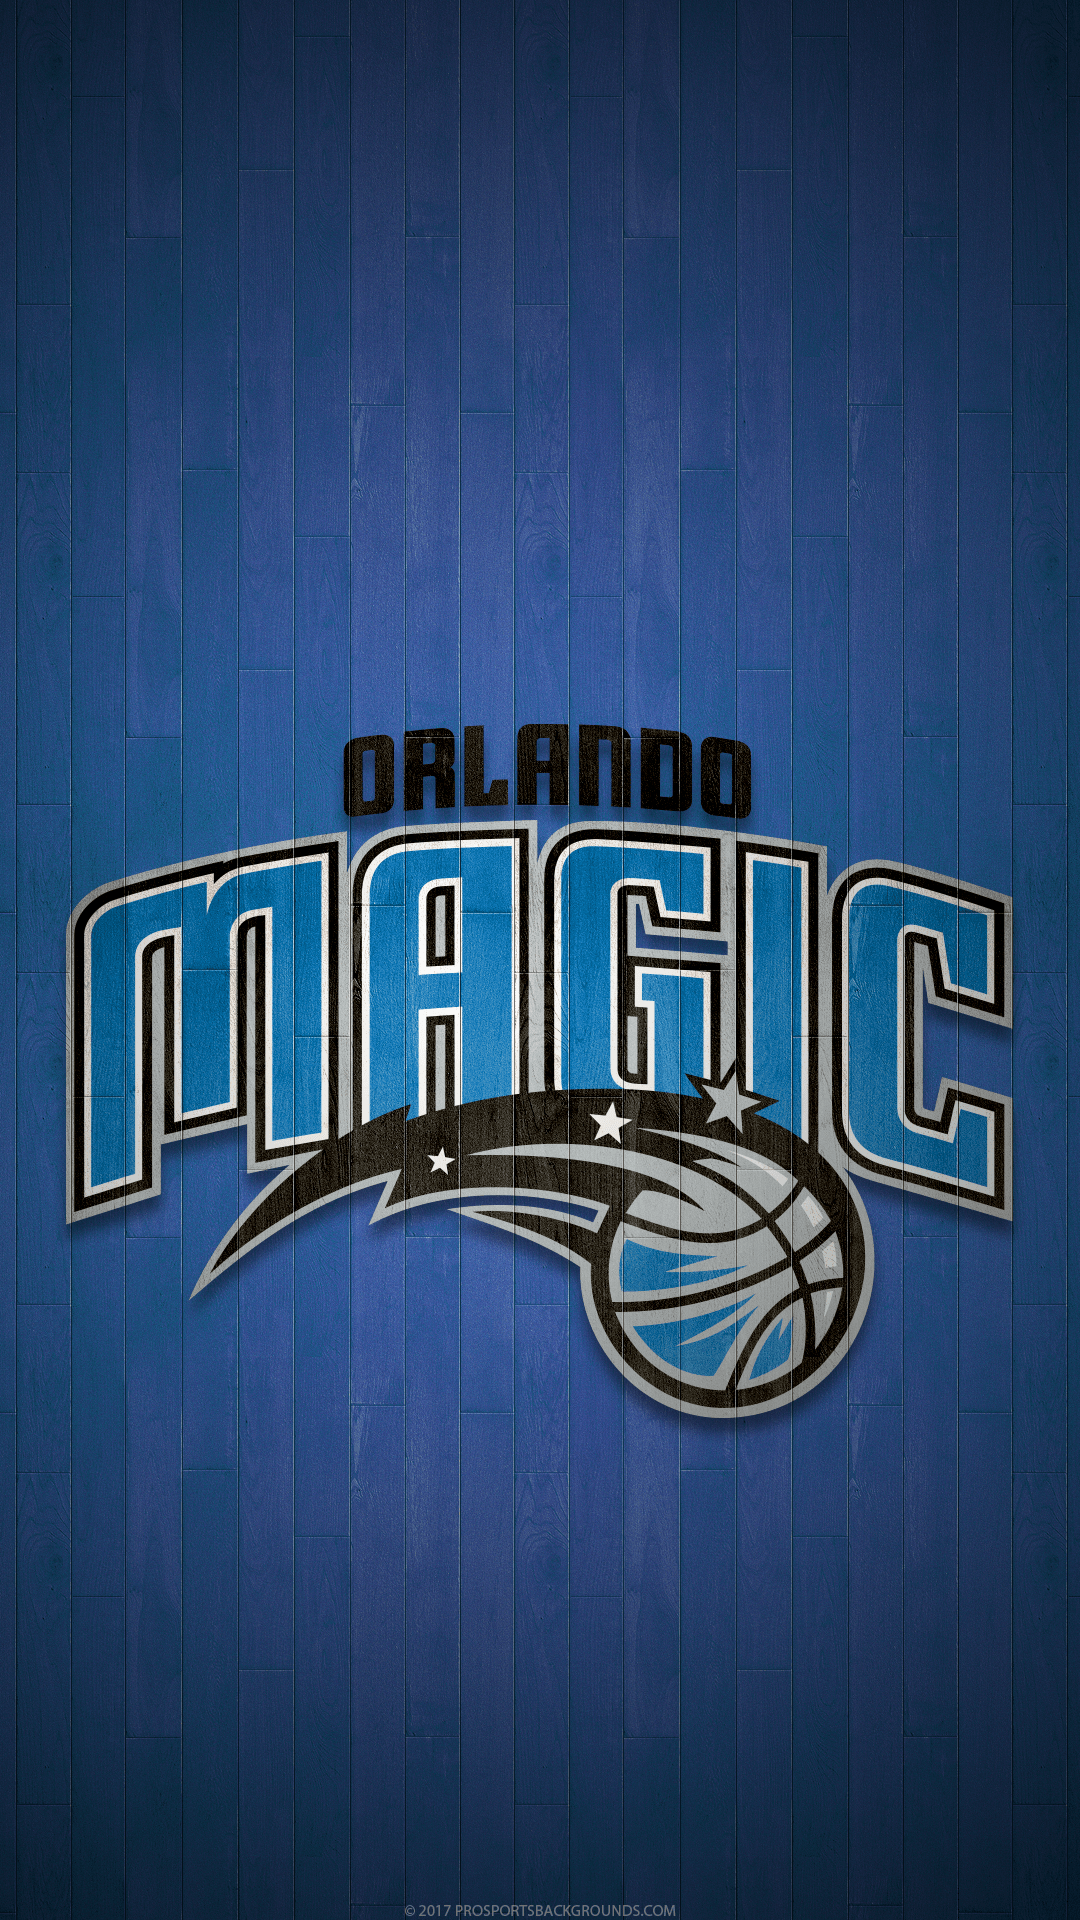 Orlando Wallpapers Wallpaper Cave